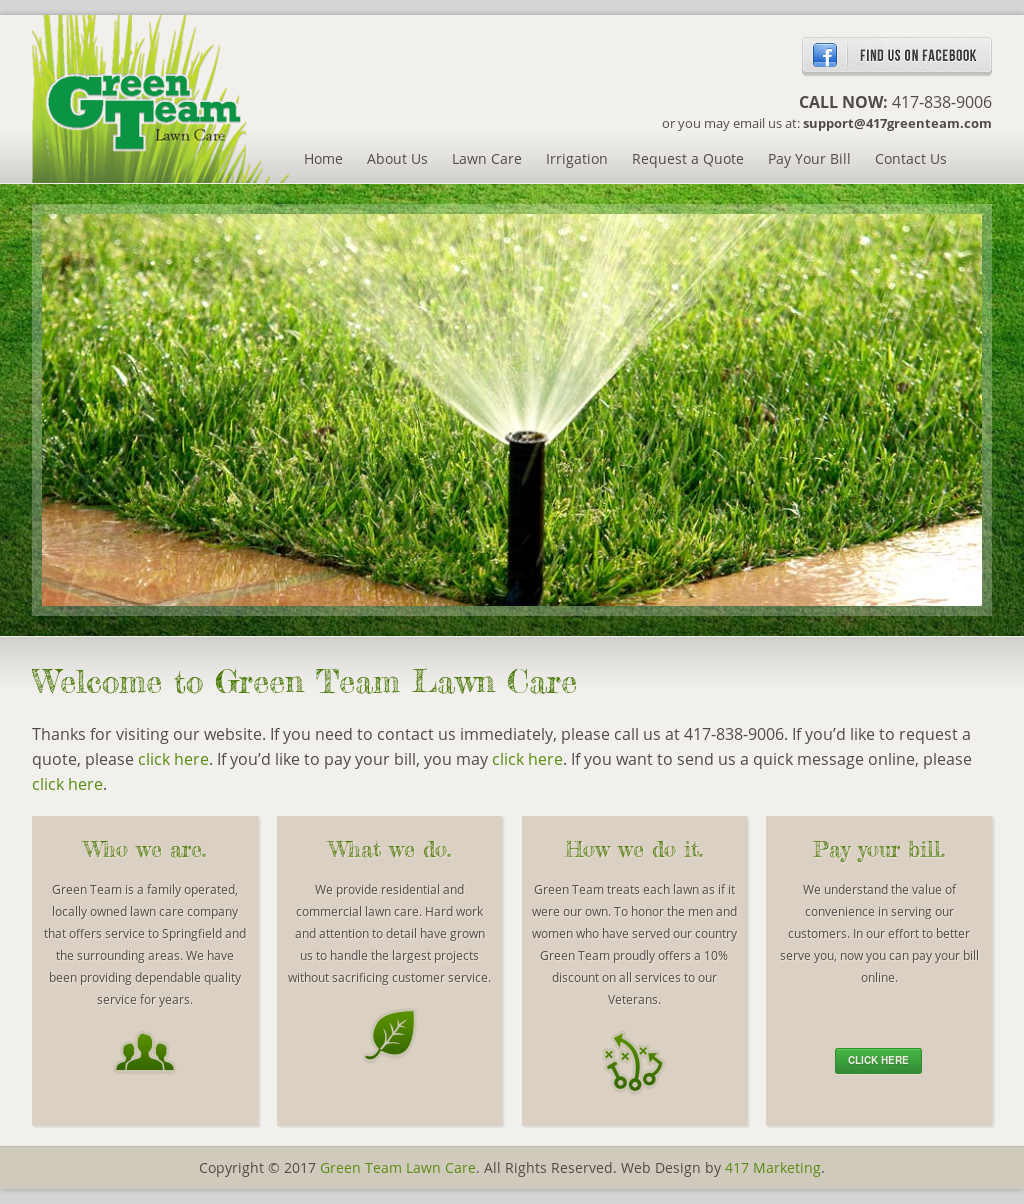 Green Team Lawn Care Website History